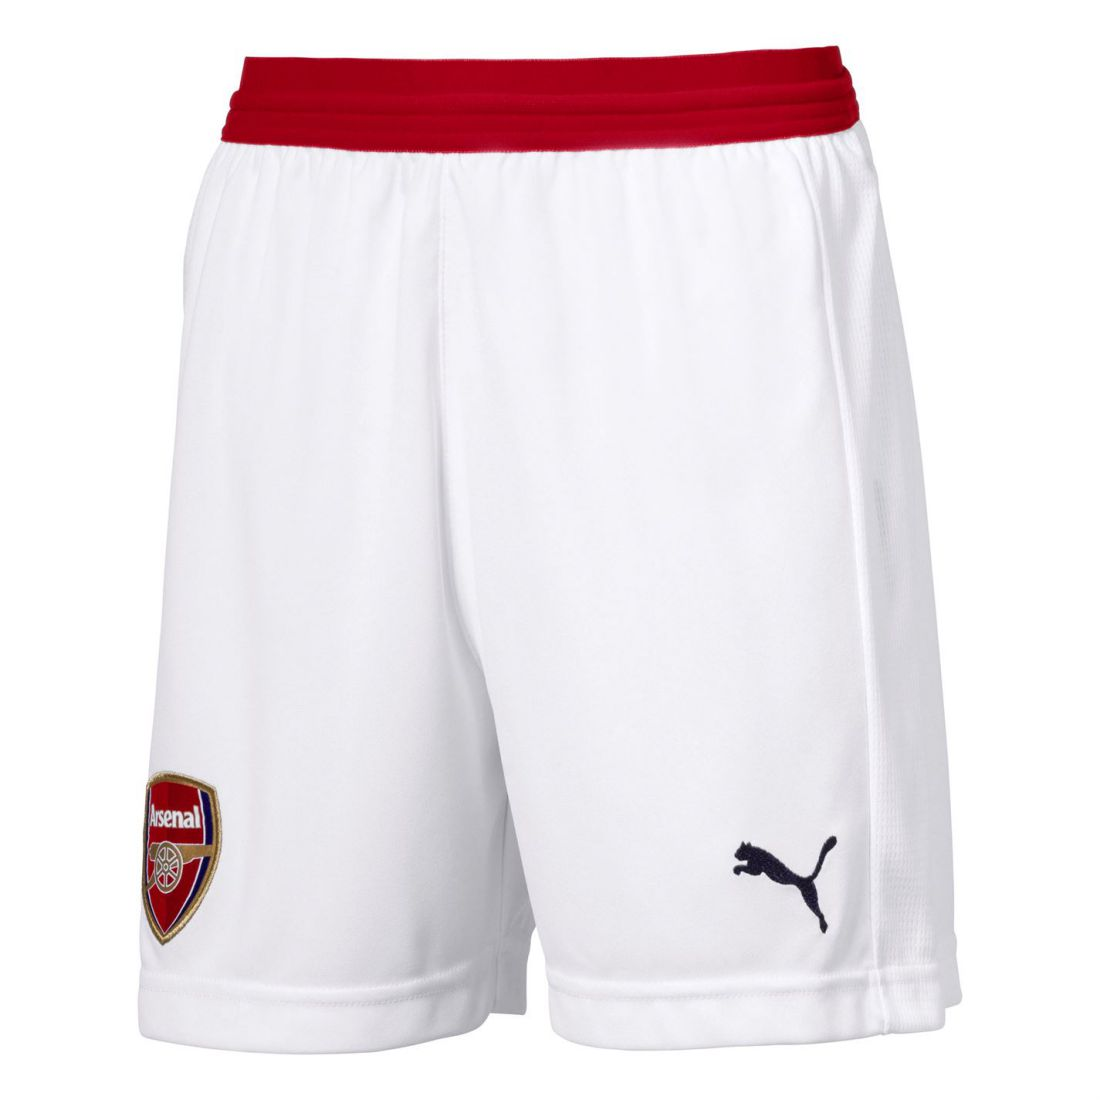 Puma Arsenal Home Shorts 2018 2019 Youngster Childrens Domestic Pants Trousers